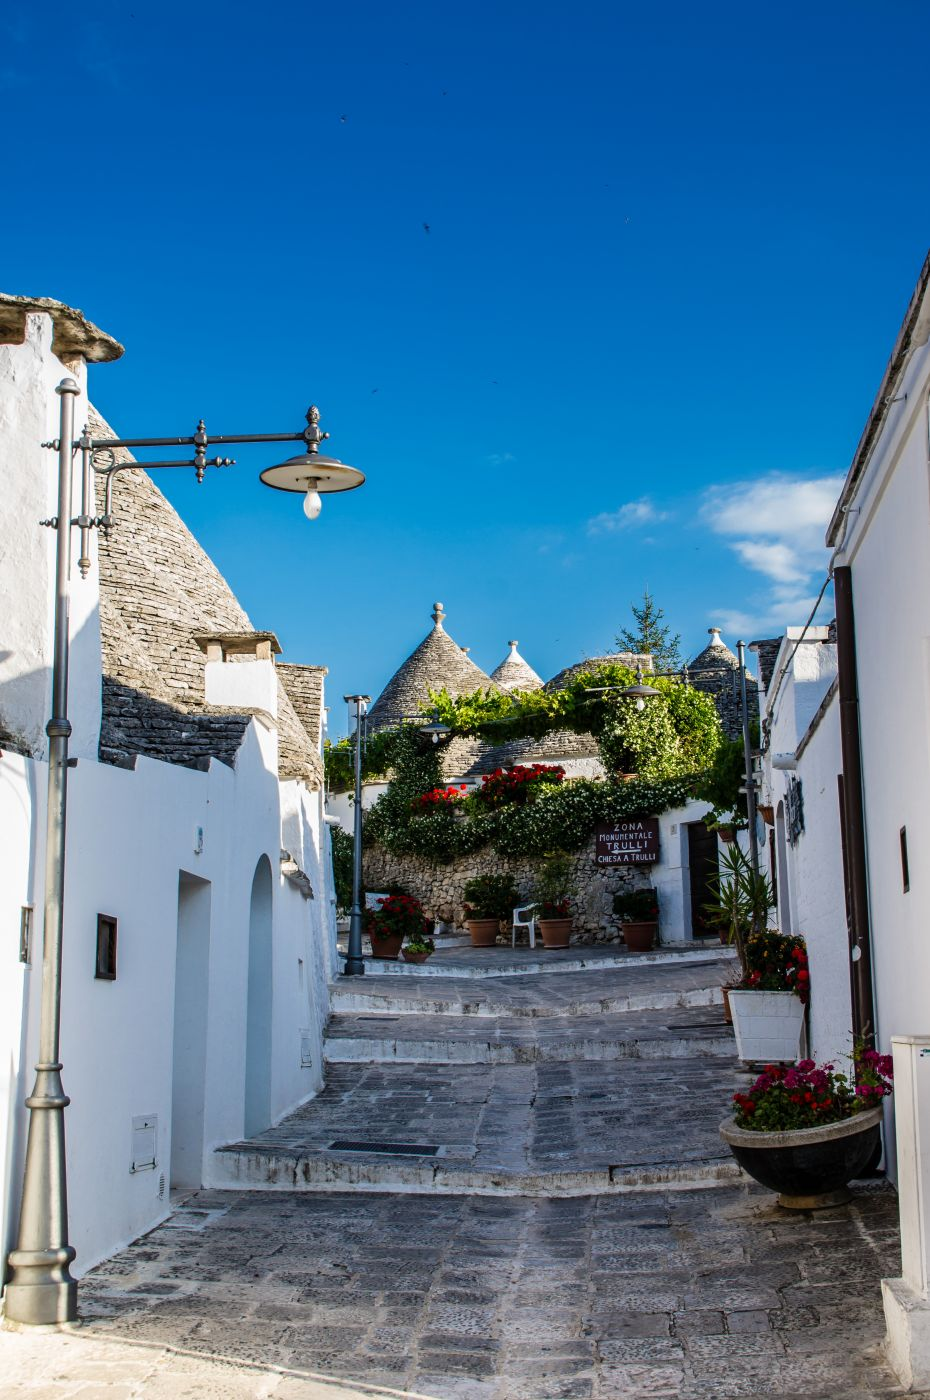 Historic centre of Alberobello, Italy